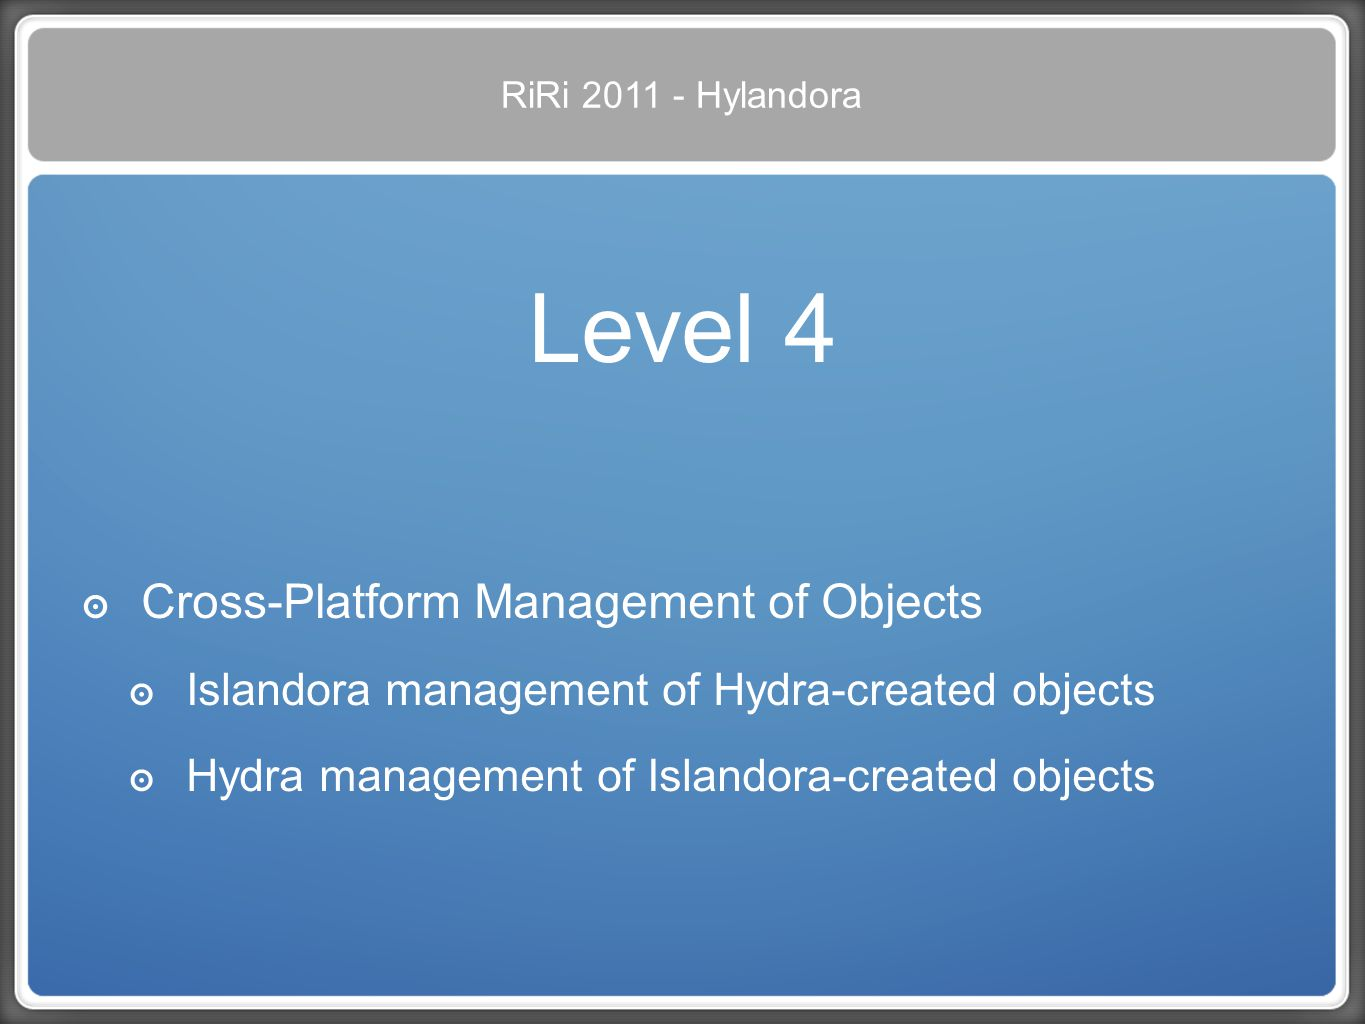 Level 4 Cross-Platform Management of Objects